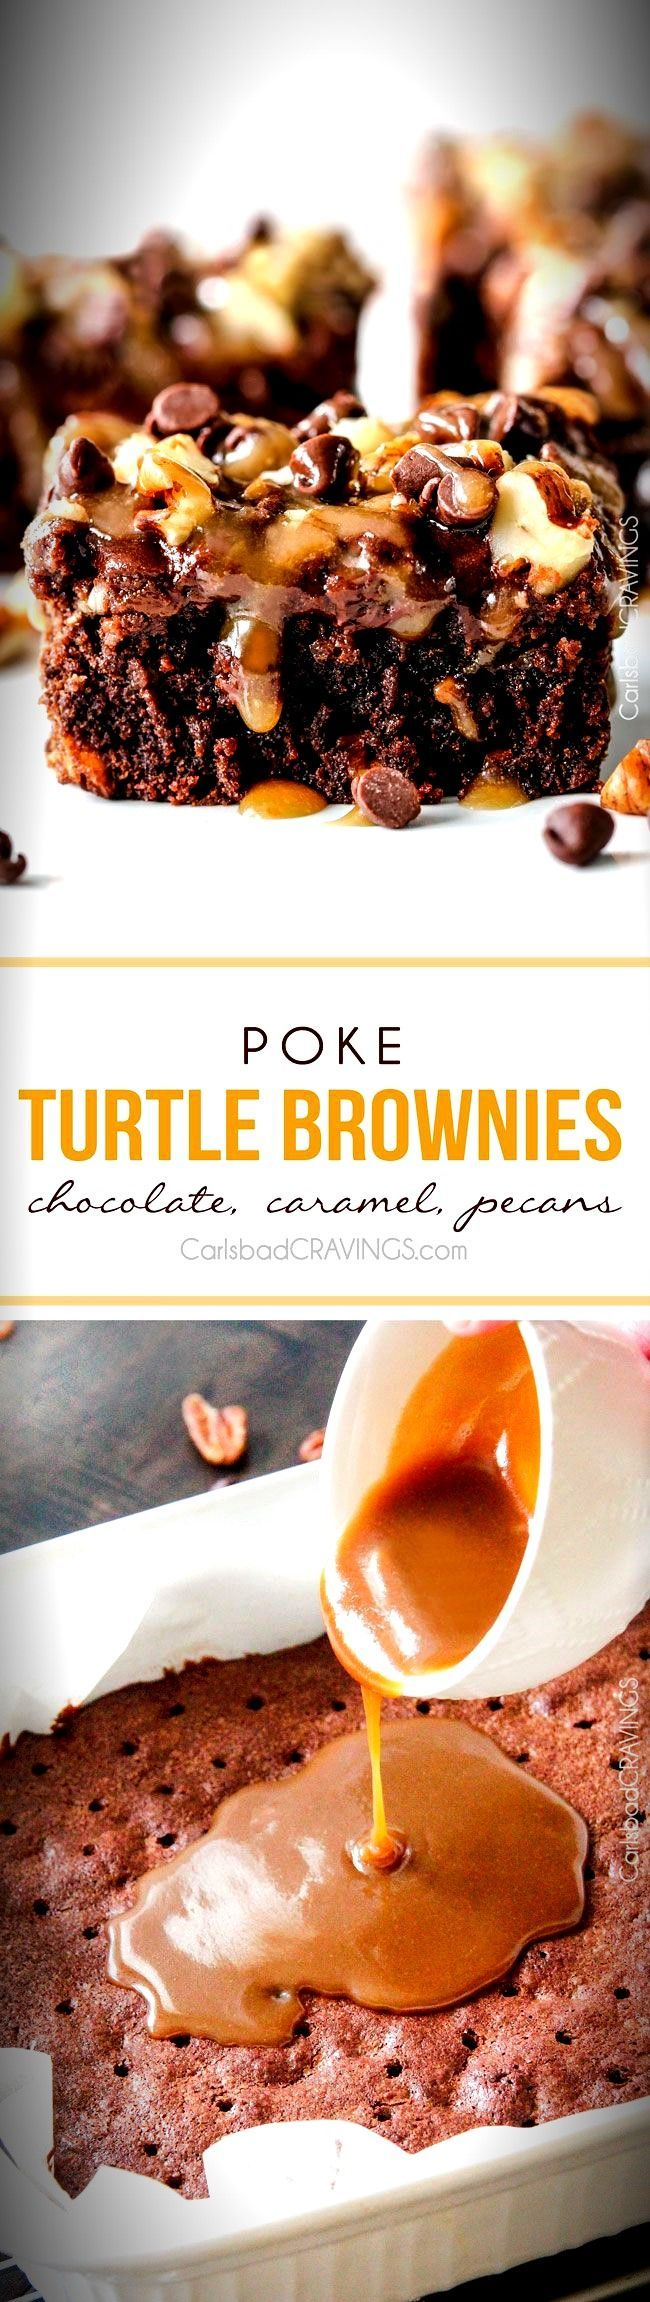 Crazy moist Poke Turtle Brownies seeping with pockets of caramel, infused with pecans and chocolate chips, smothered in the BEST chocolate frosting and topped with more caramel. the best brownies EVER! #turtlebrownies Crazy moist Poke Turtle Brownies seeping with pockets of caramel, infused with pecans and chocolate chips, smothered in the BEST chocolate frosting and topped with more caramel. the best brownies EVER! #turtlebrownies